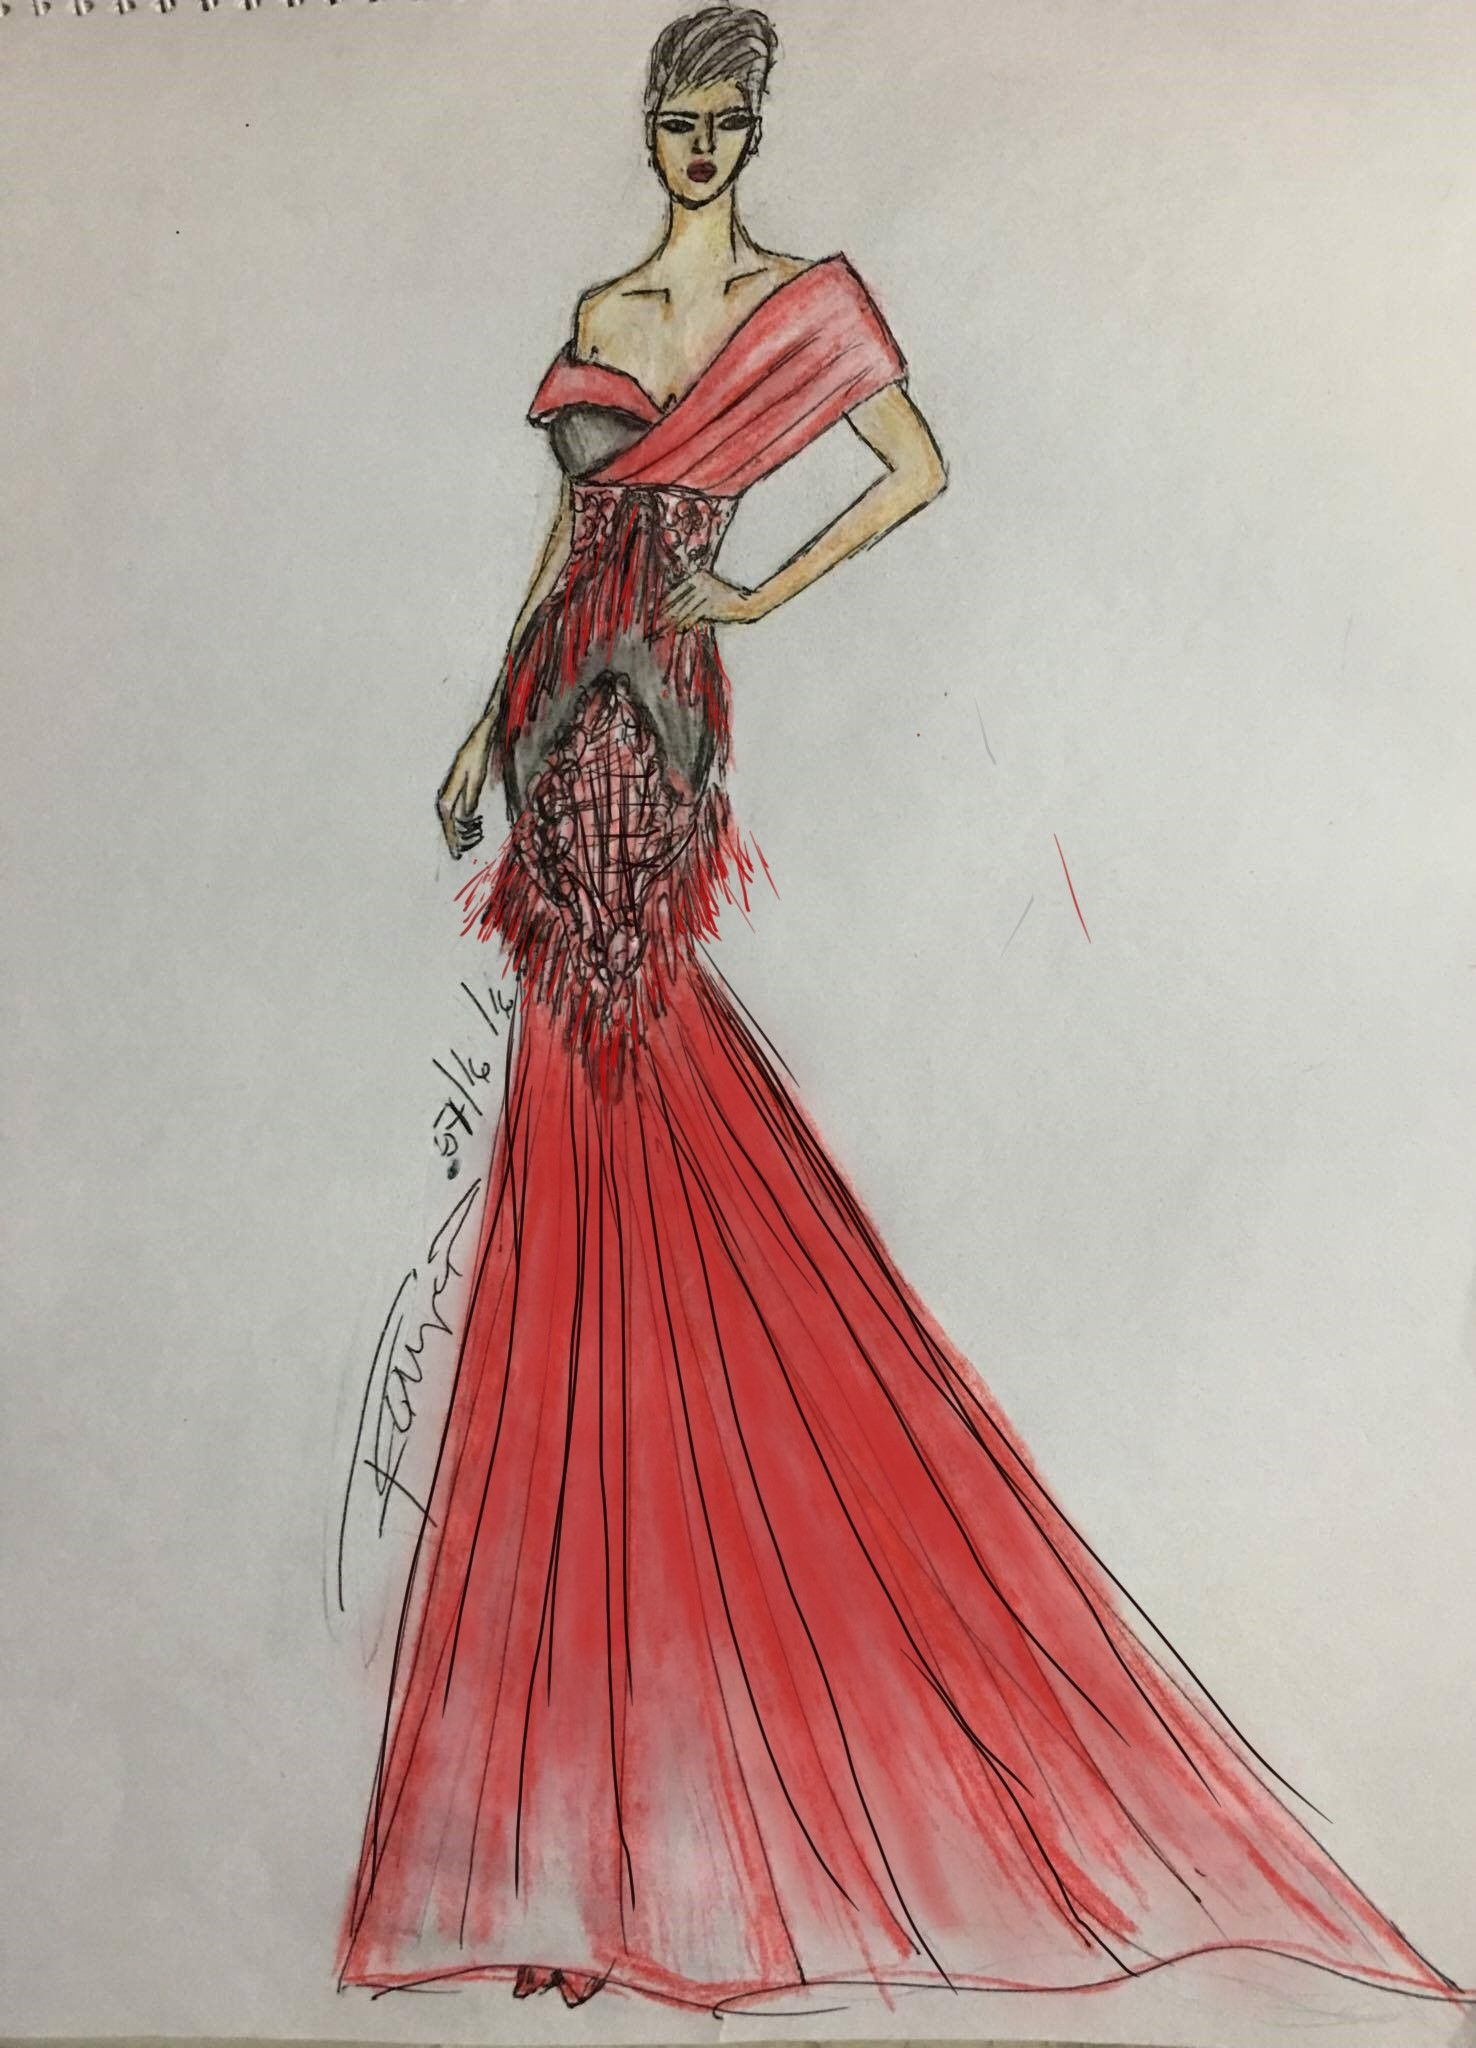 #fashionillustration #fringes #fashiondesign #architecture #structural #ombre #gown #lace